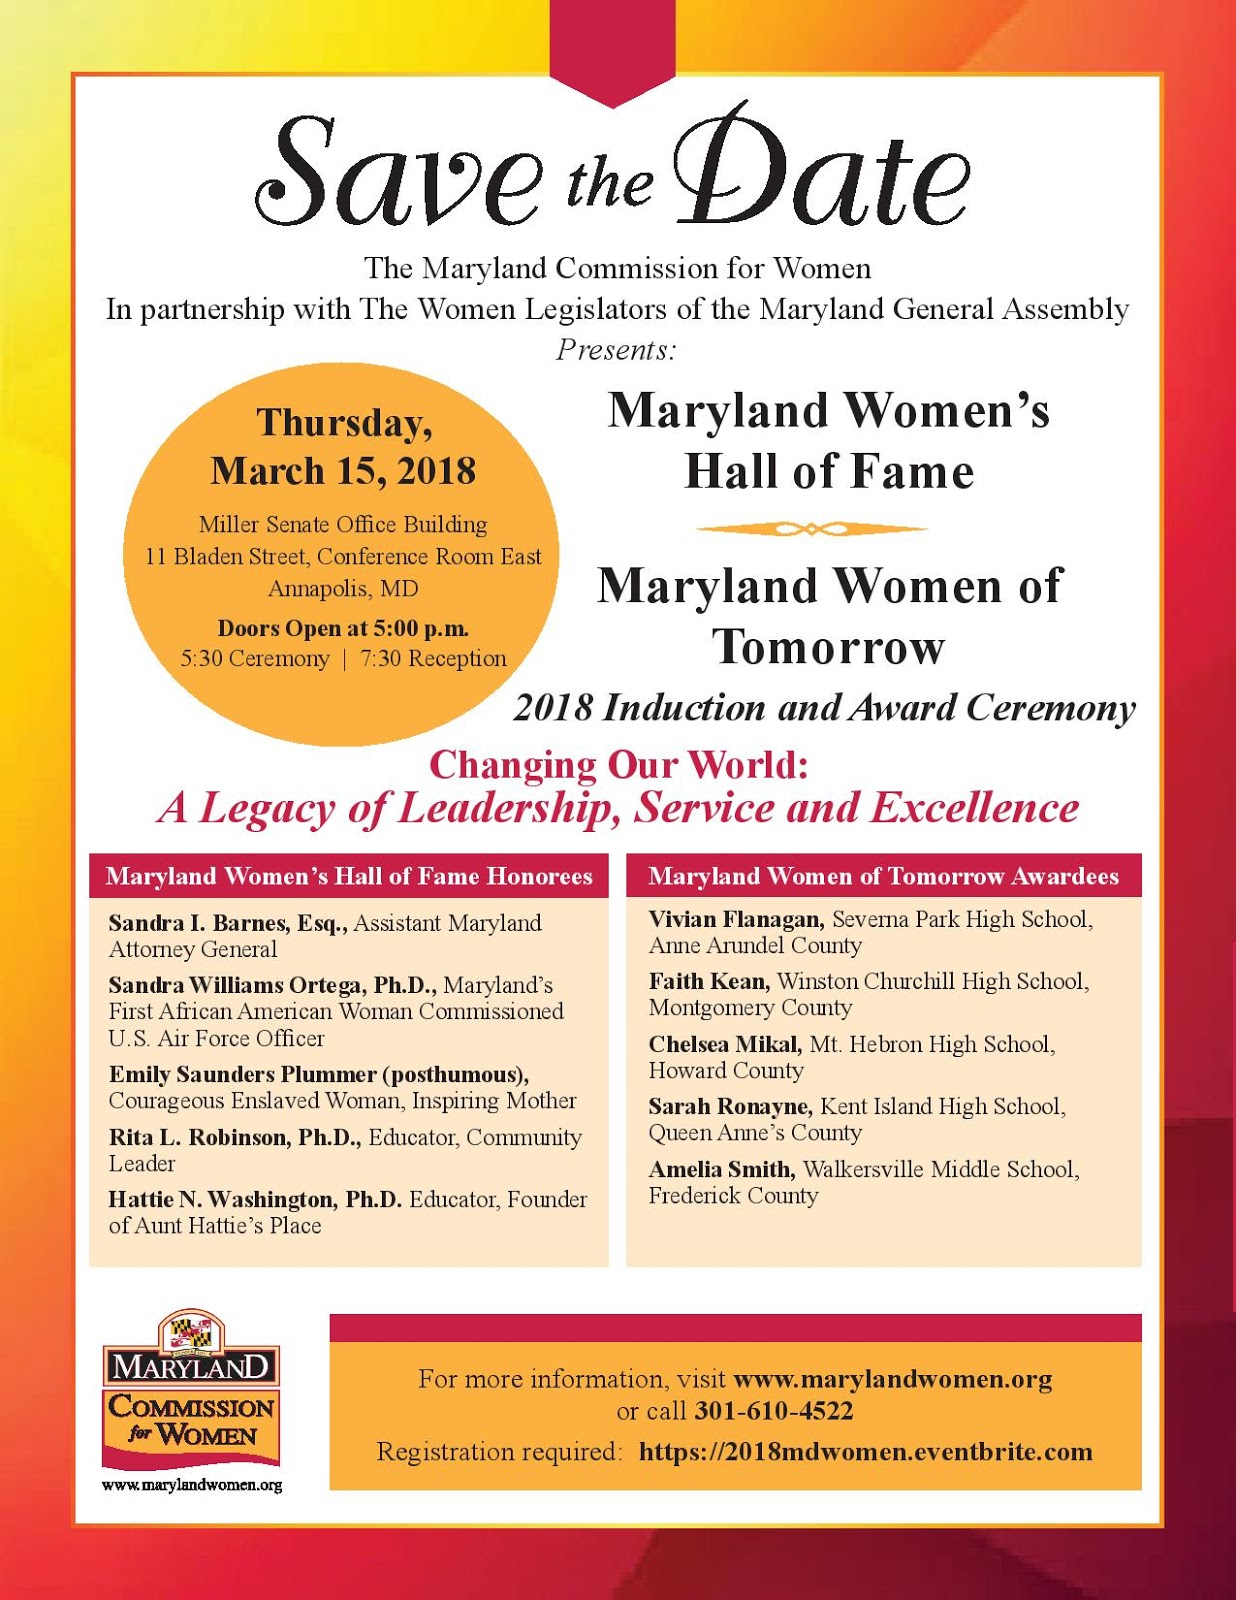 Prince georges county drug policy coalition inc pgcdpc prince georges county drug policy coalition incs nominee dr hattie washington inducted into 2018 maryland womens hall of fame 1betcityfo Images